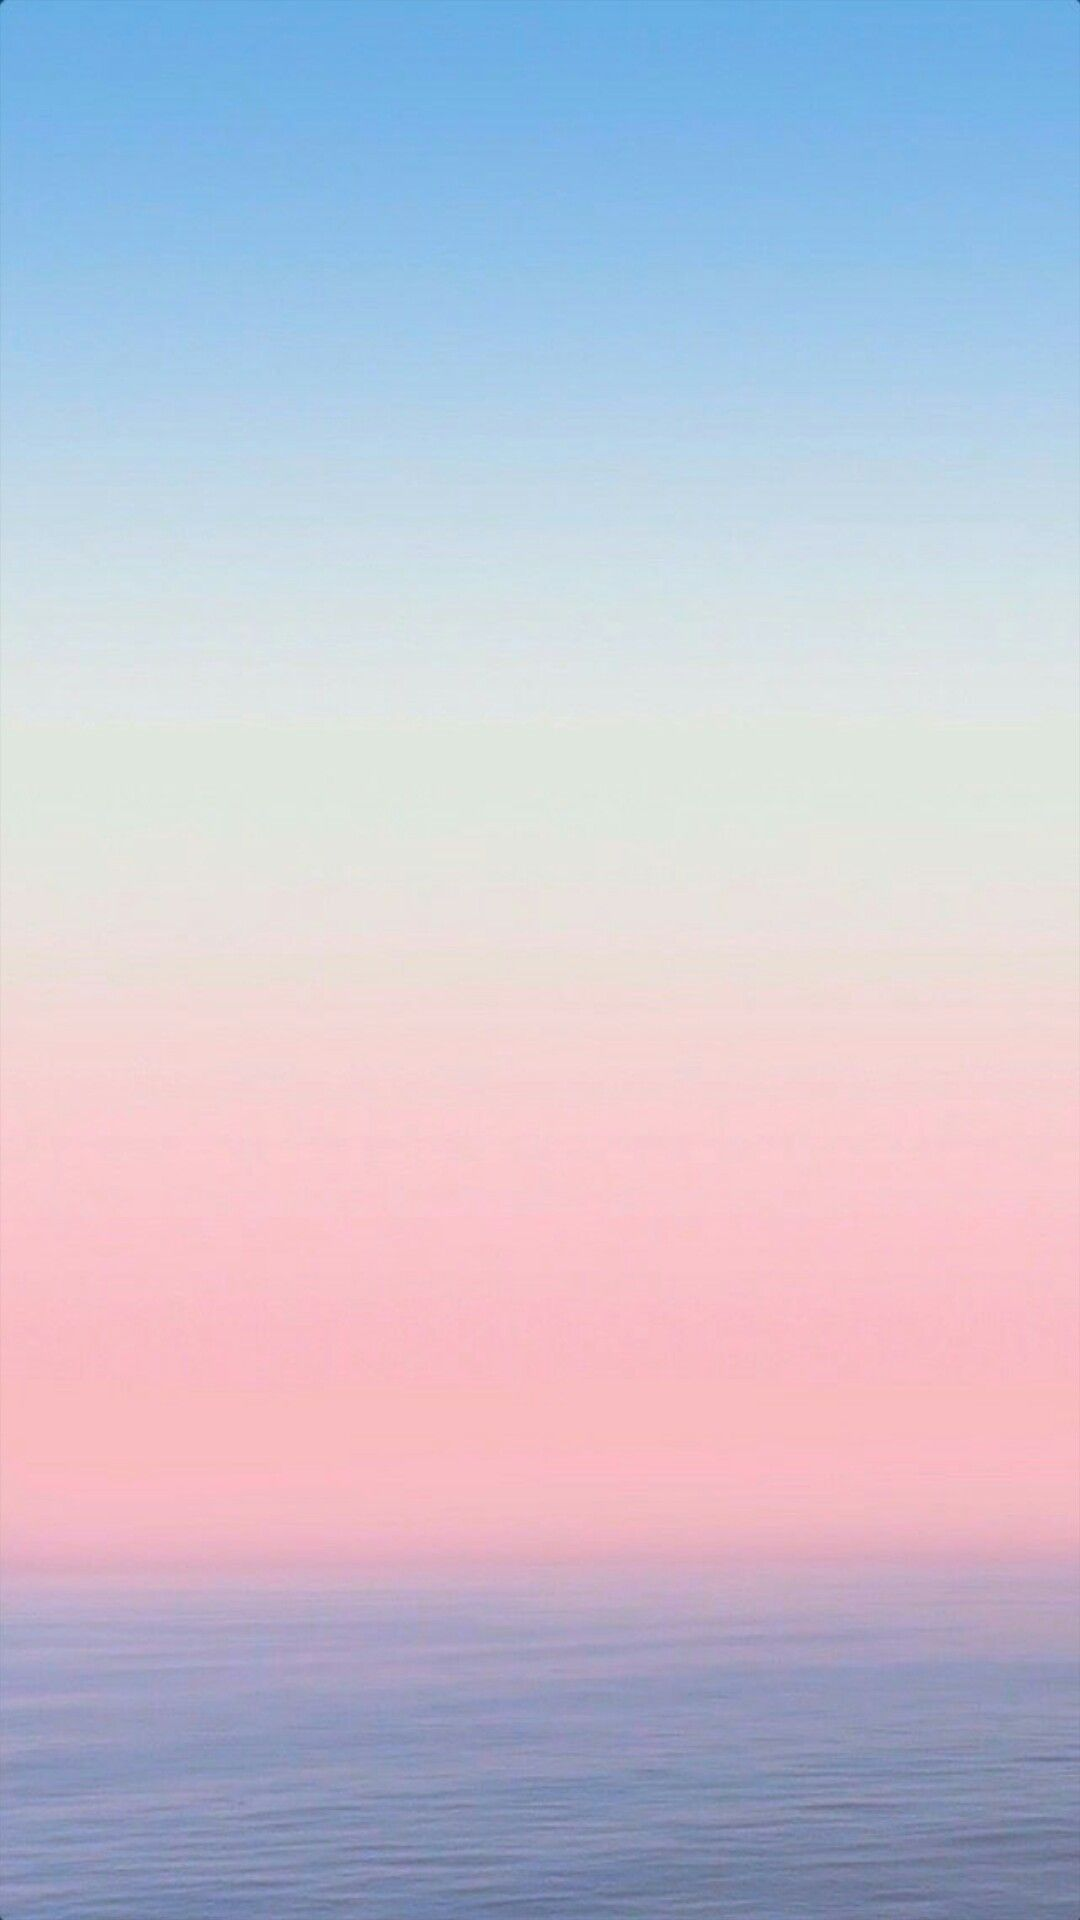 Aesthetic Pink And Blue Wallpaper Home Screen Landscape Wallpaper Cute Home Screen Wallpaper Cute Home Screens